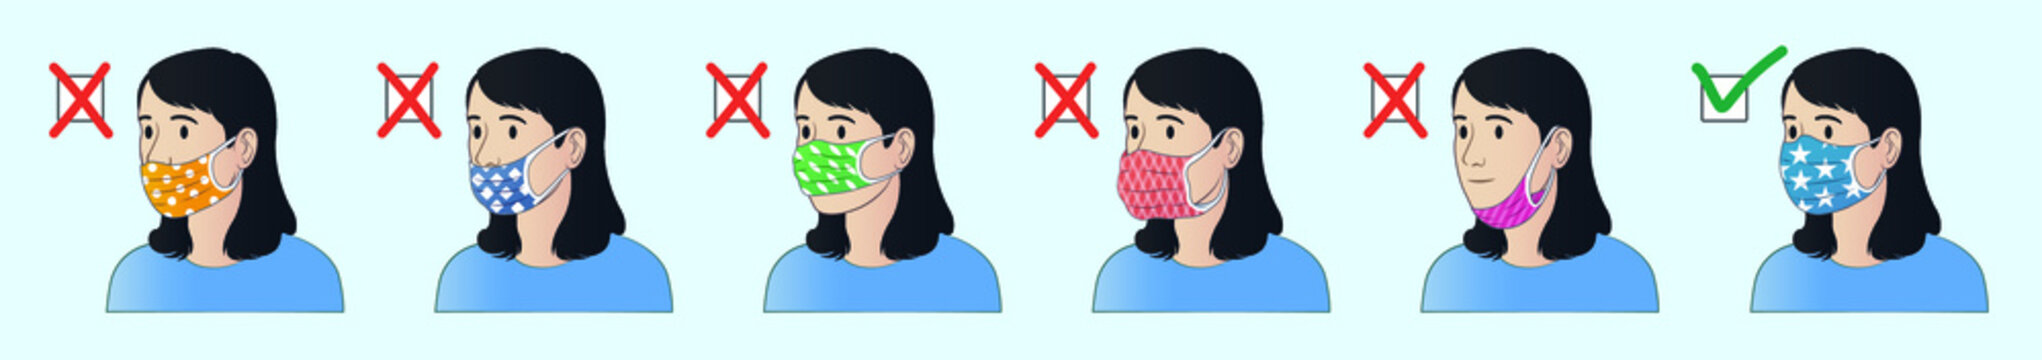 How to wear mask correctly. How to use mask properly. Correct ways to wear face mask. Common mistakes when wearing mask.